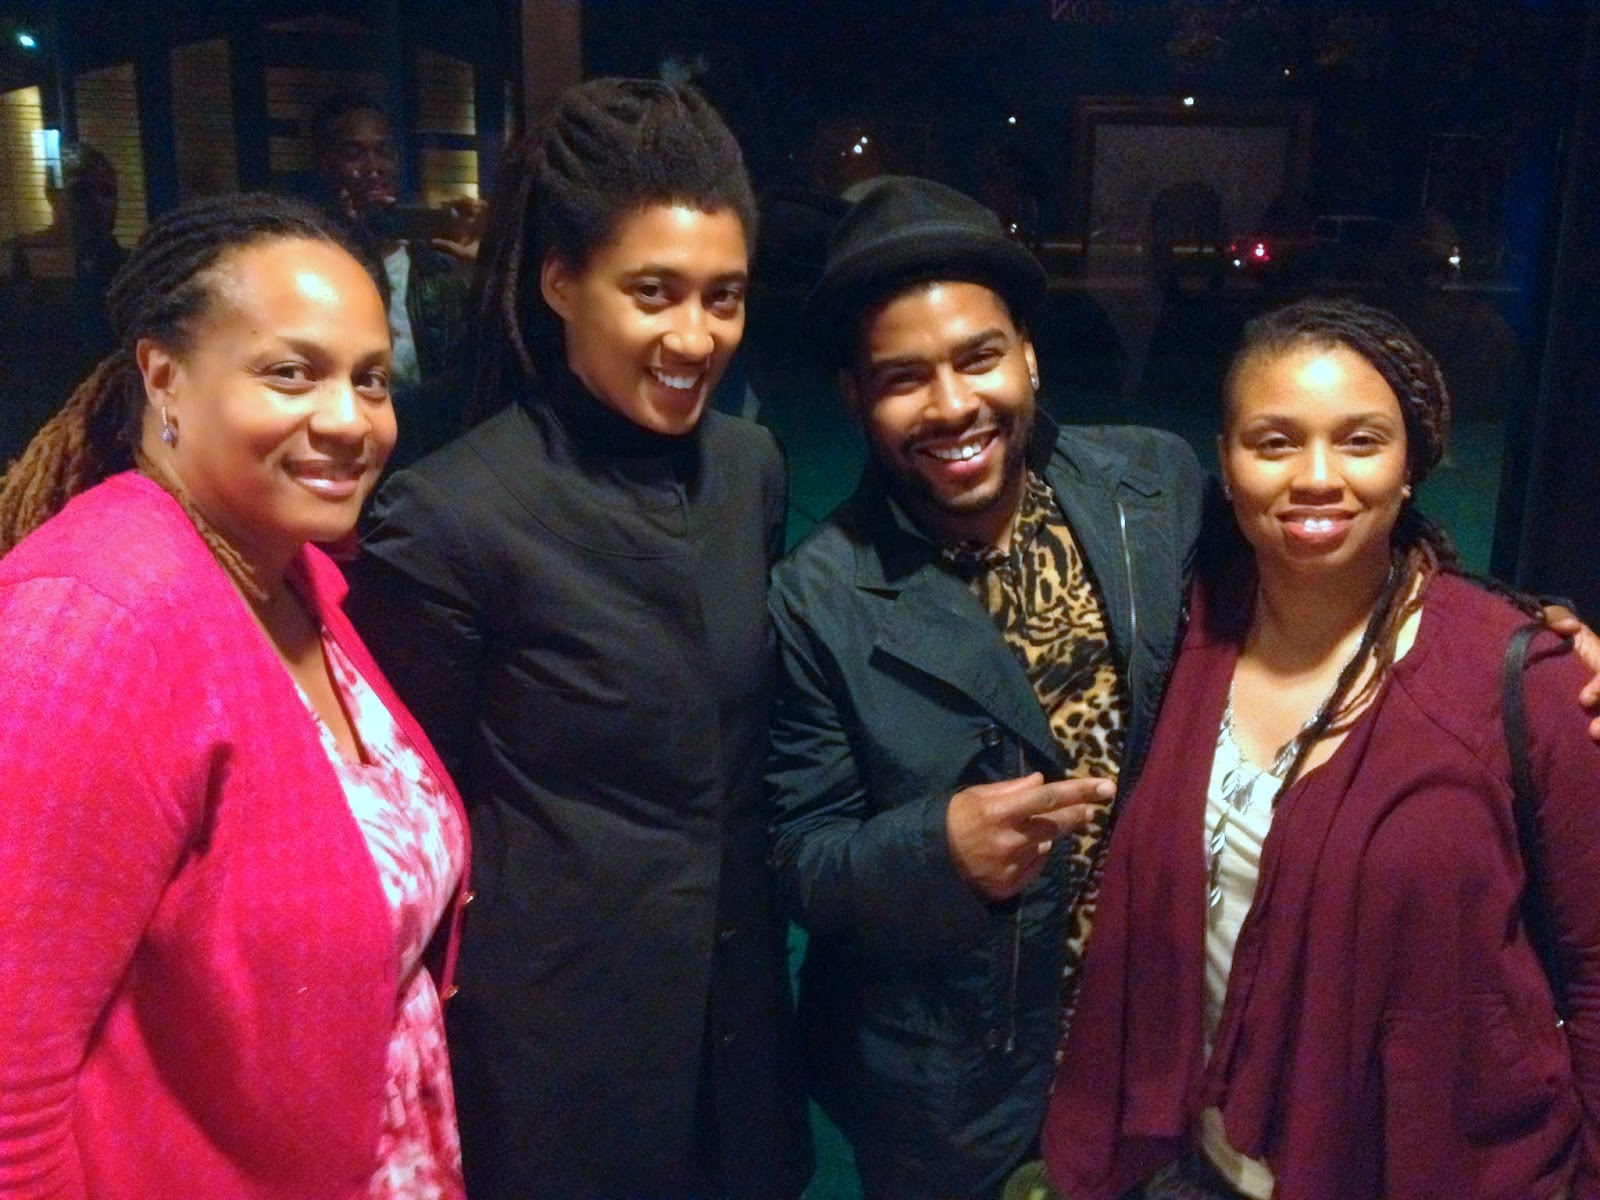 Janice Temple, Tomeka Reid, Corey Wilkes and his Wife Carmen Wilkes